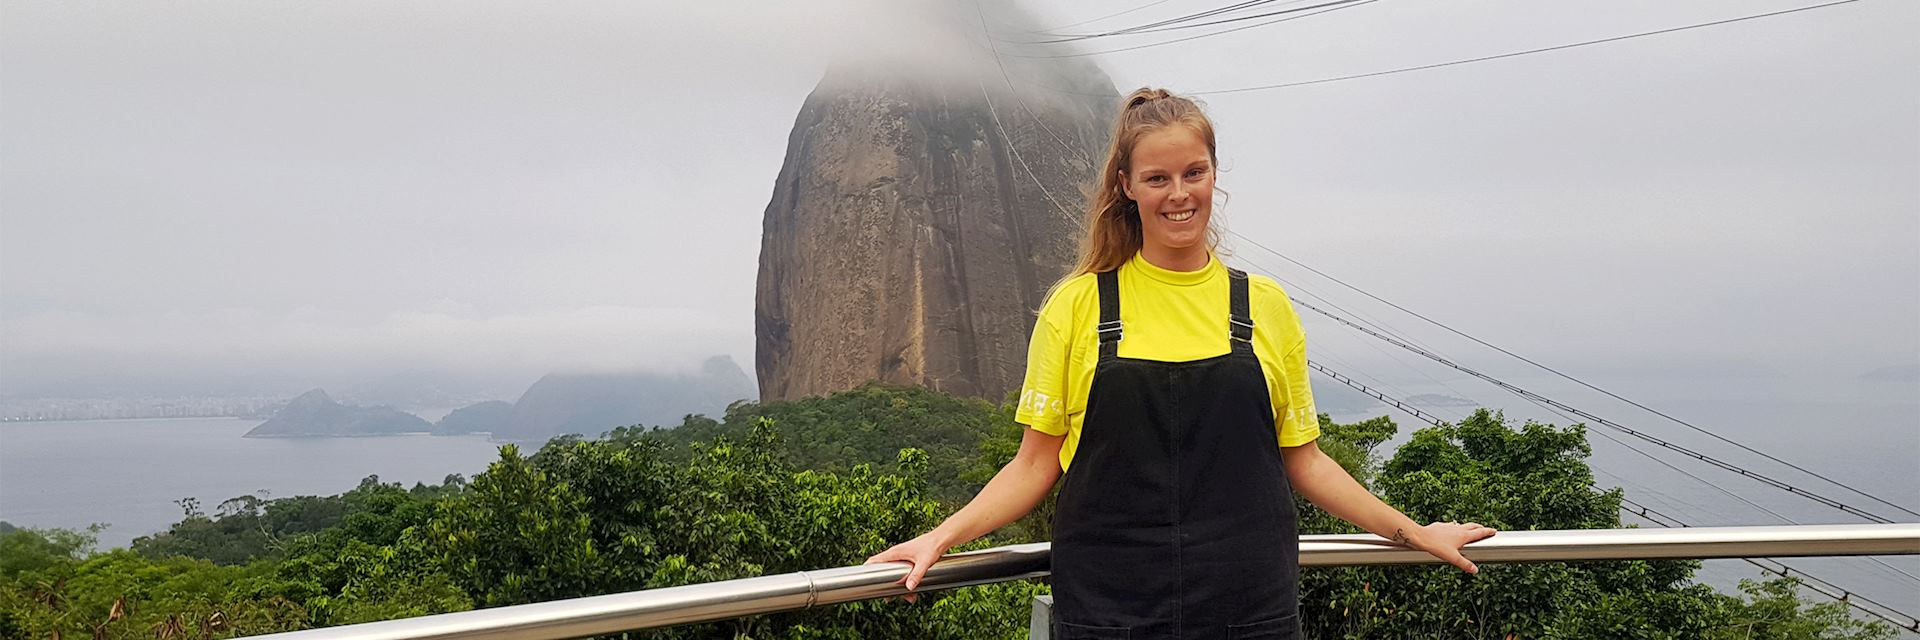 Adele in front of Sugar Loaf Mountain, Brazil